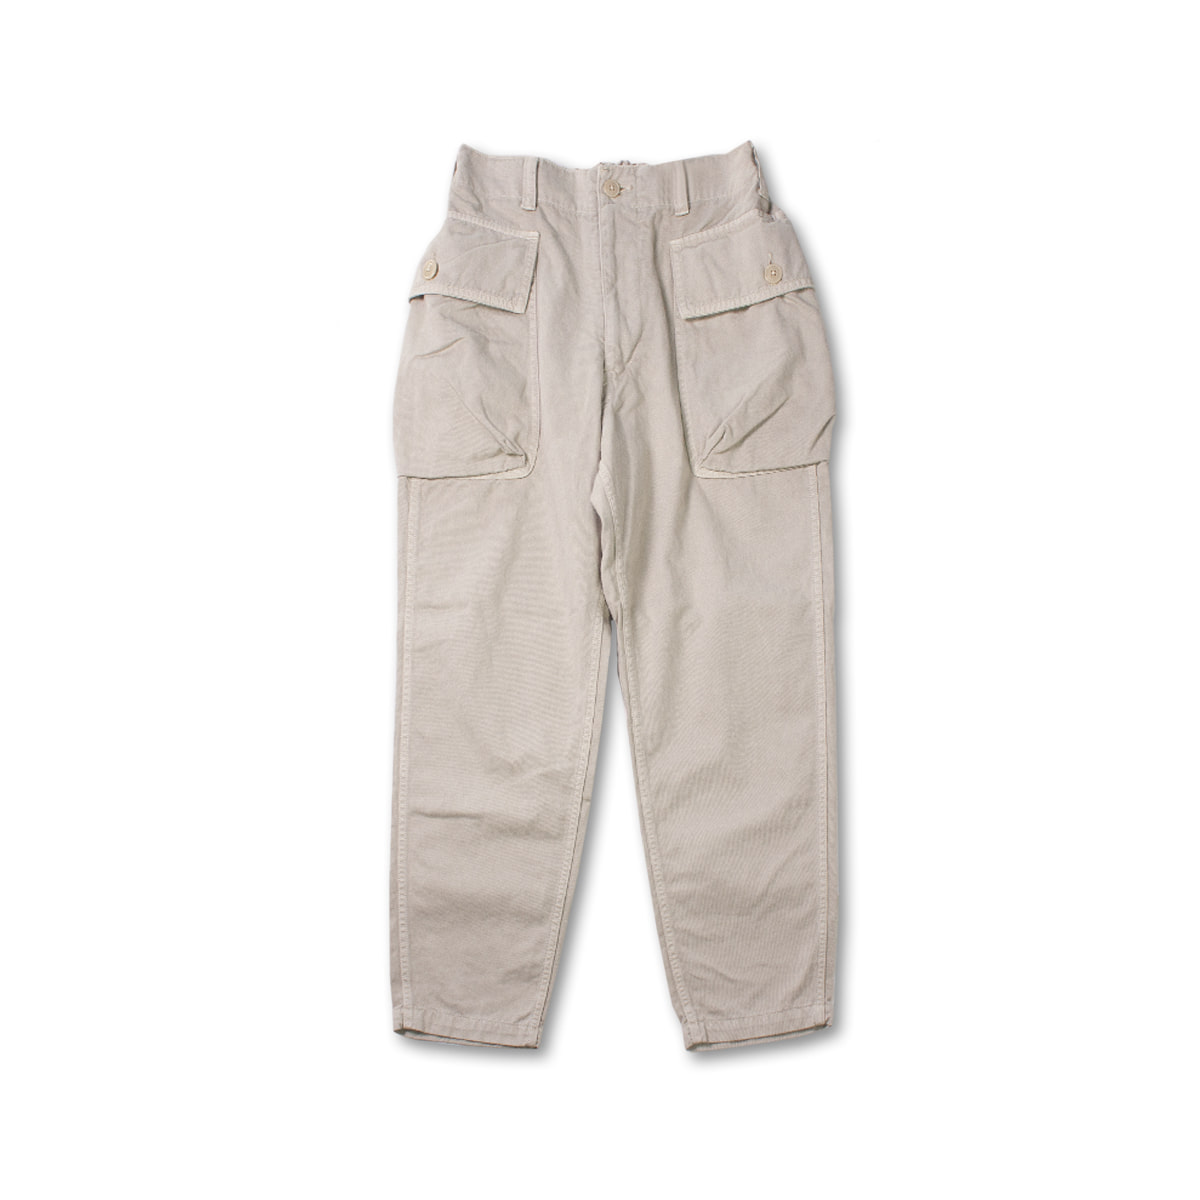 [SAGE DE CRET] MILITARY PANTS 'OFF WHITE'